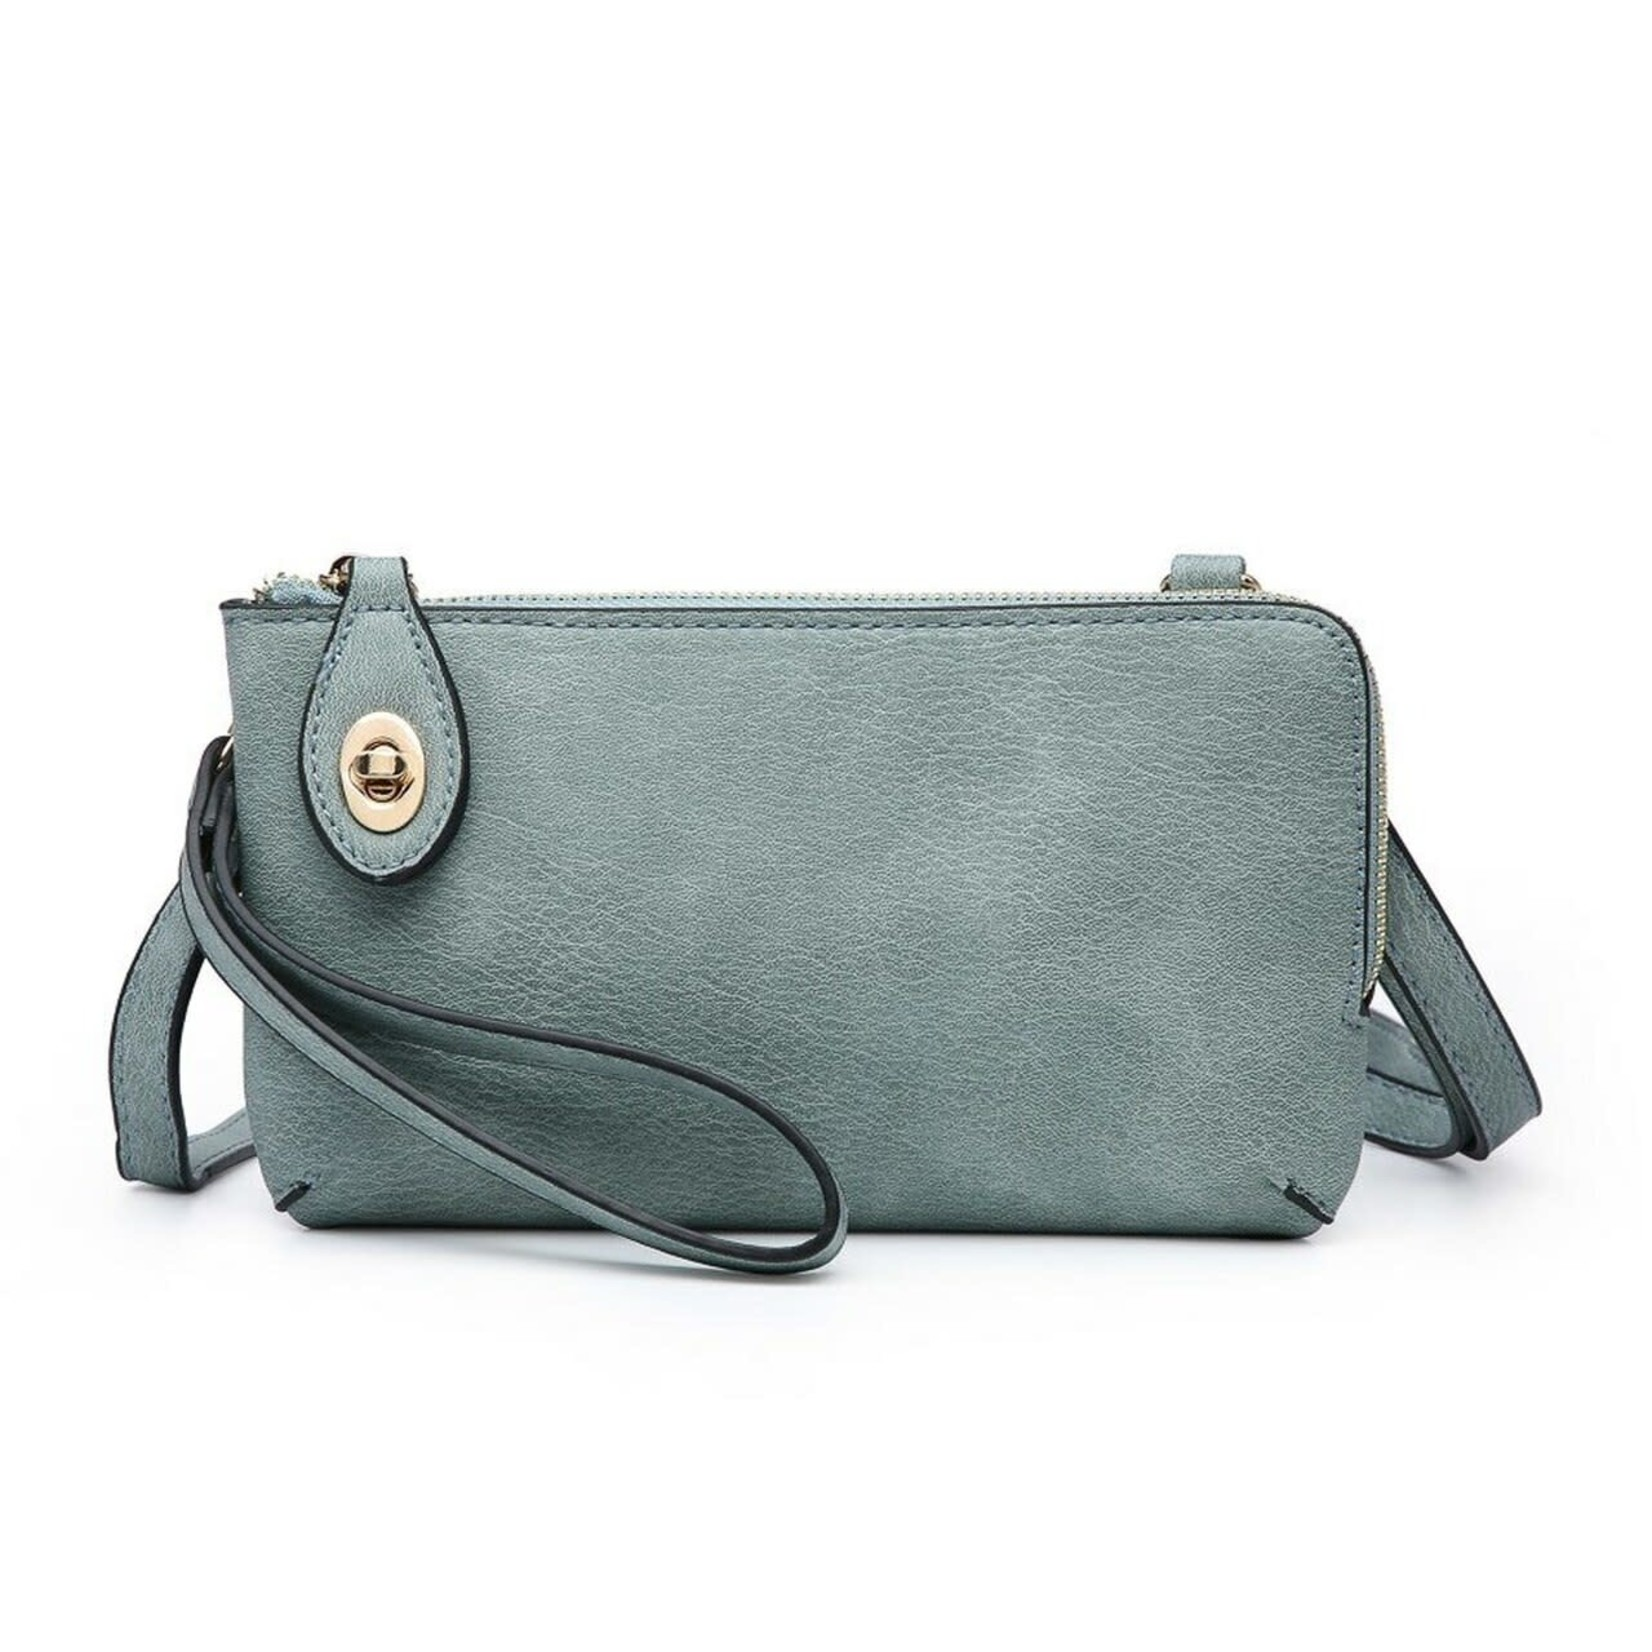 Jen & Co M1818-TL:  Kendall Crossbody / Wristlet - Teal